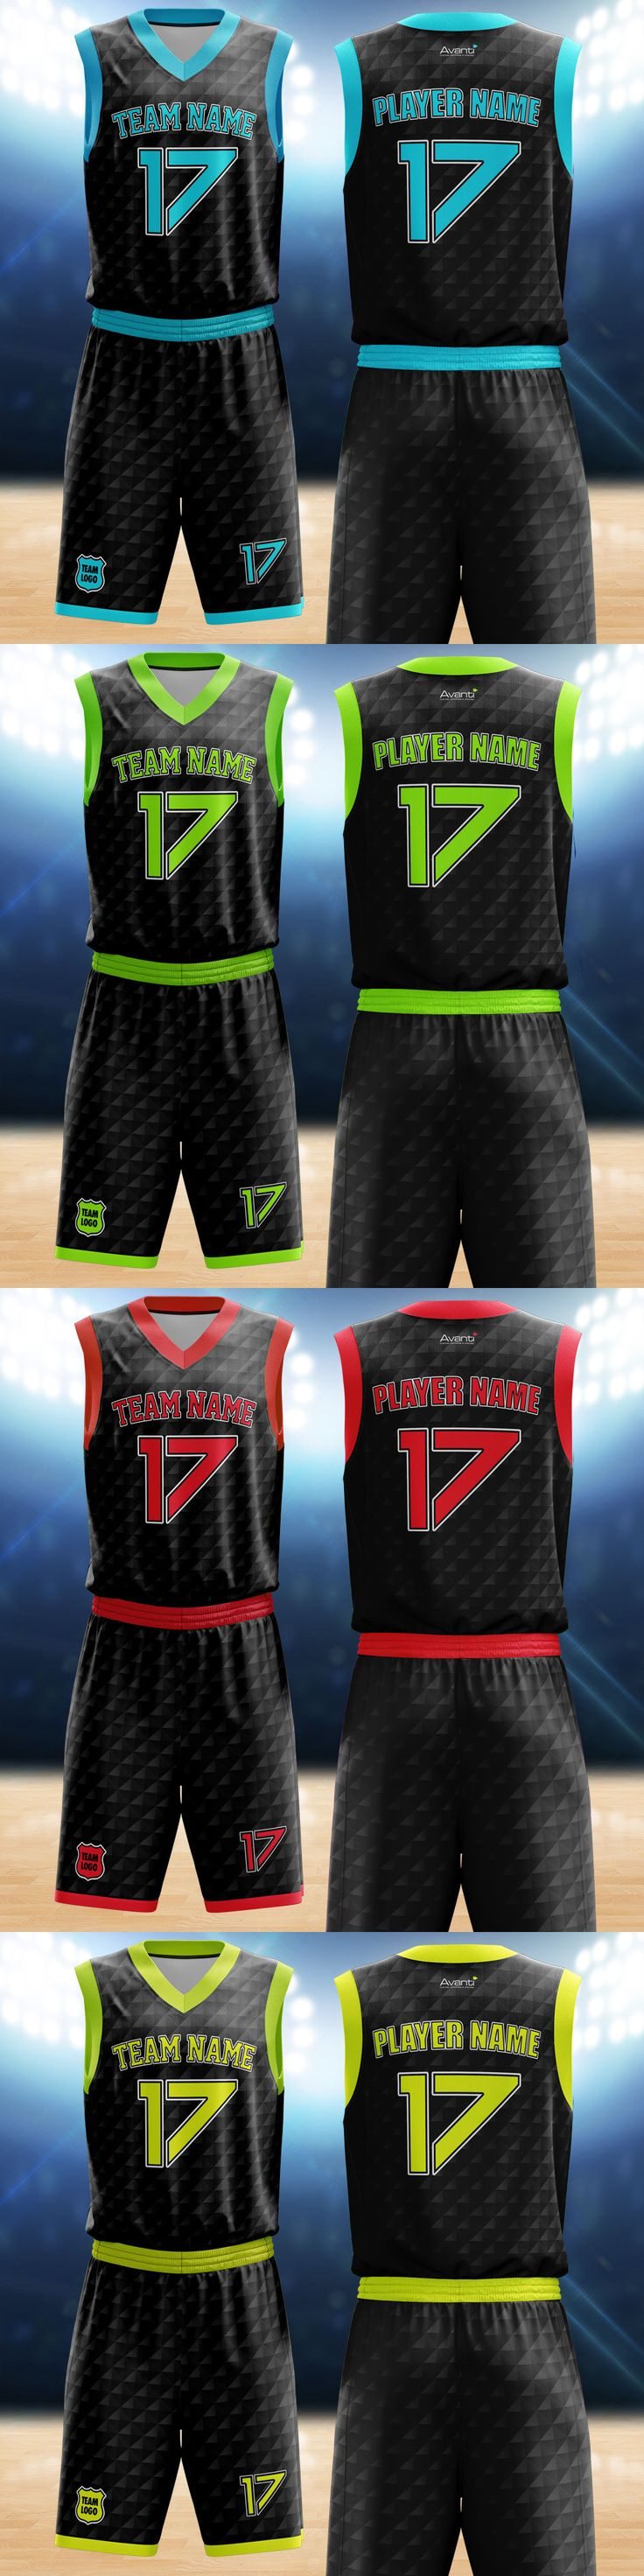 Men 158965: Custom Basketball Uniforms $38 Jersey, Shorts, Socks - Free Name, Number And Logo -> BUY IT NOW ONLY: $455 on eBay!